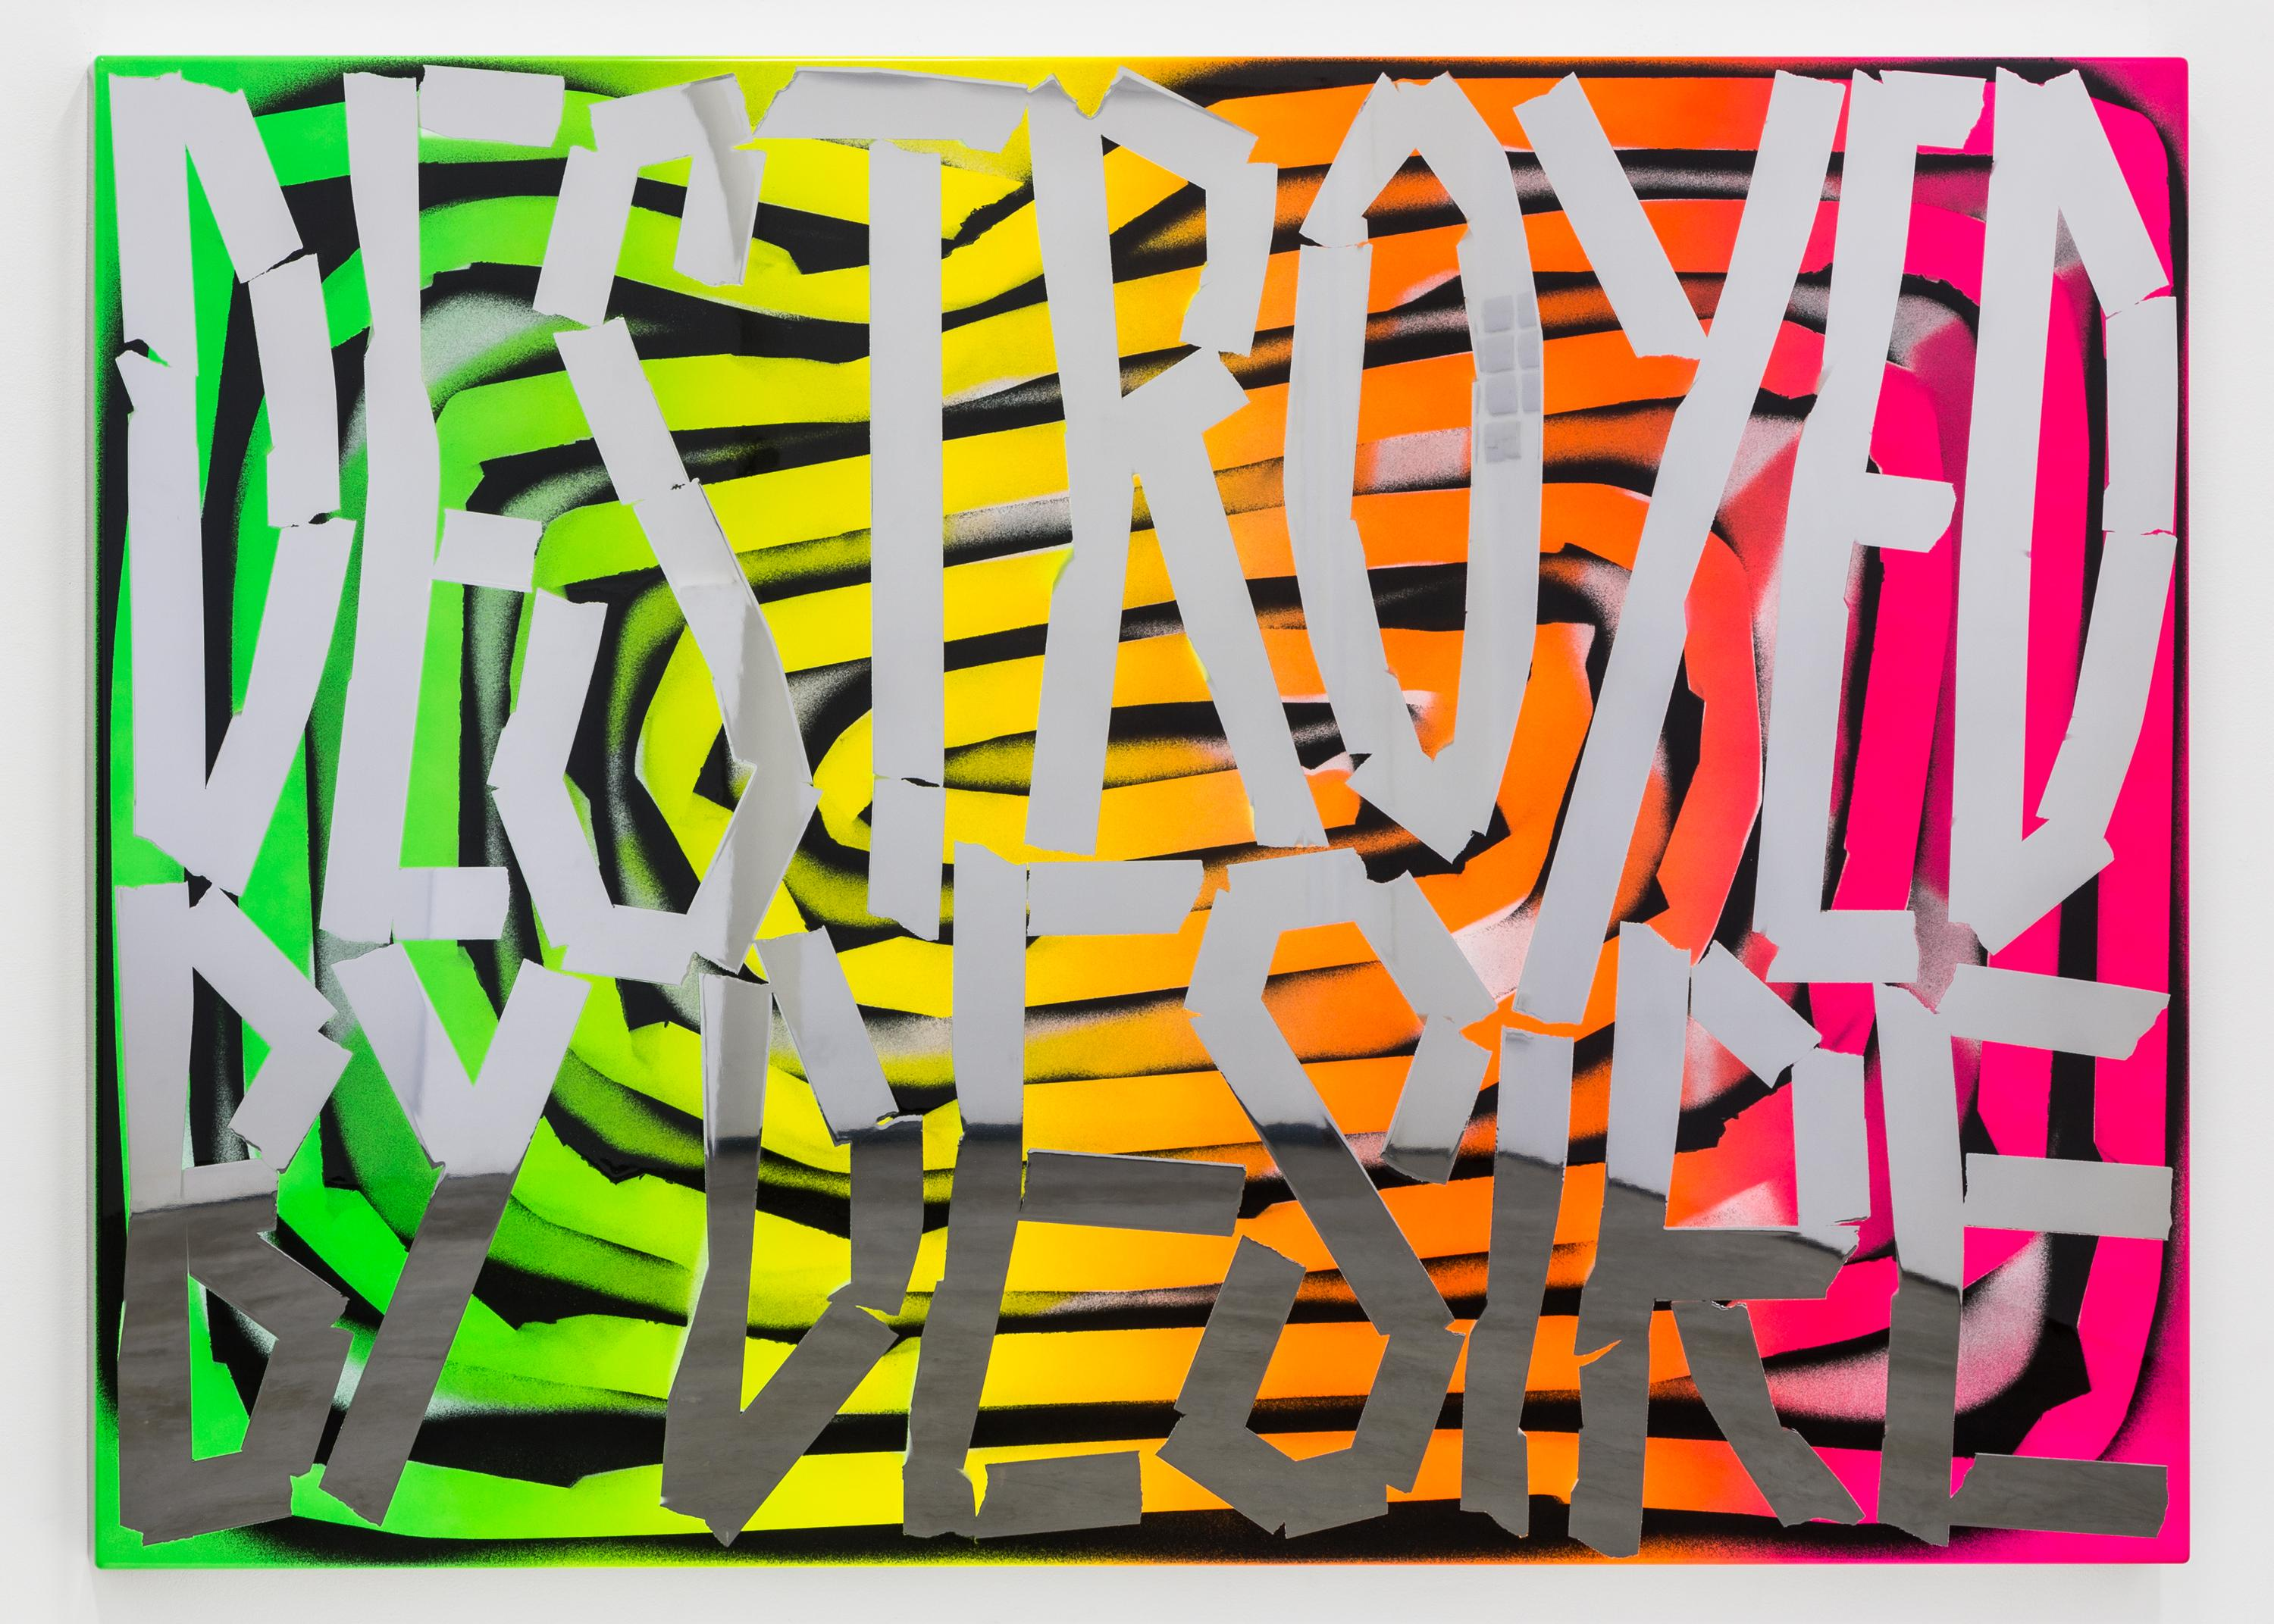 """Large jagged letters that read """"DESTROYED BY DESIRE"""" appear over a crude spiral of fluorescent green, yellow, orange, and pink."""